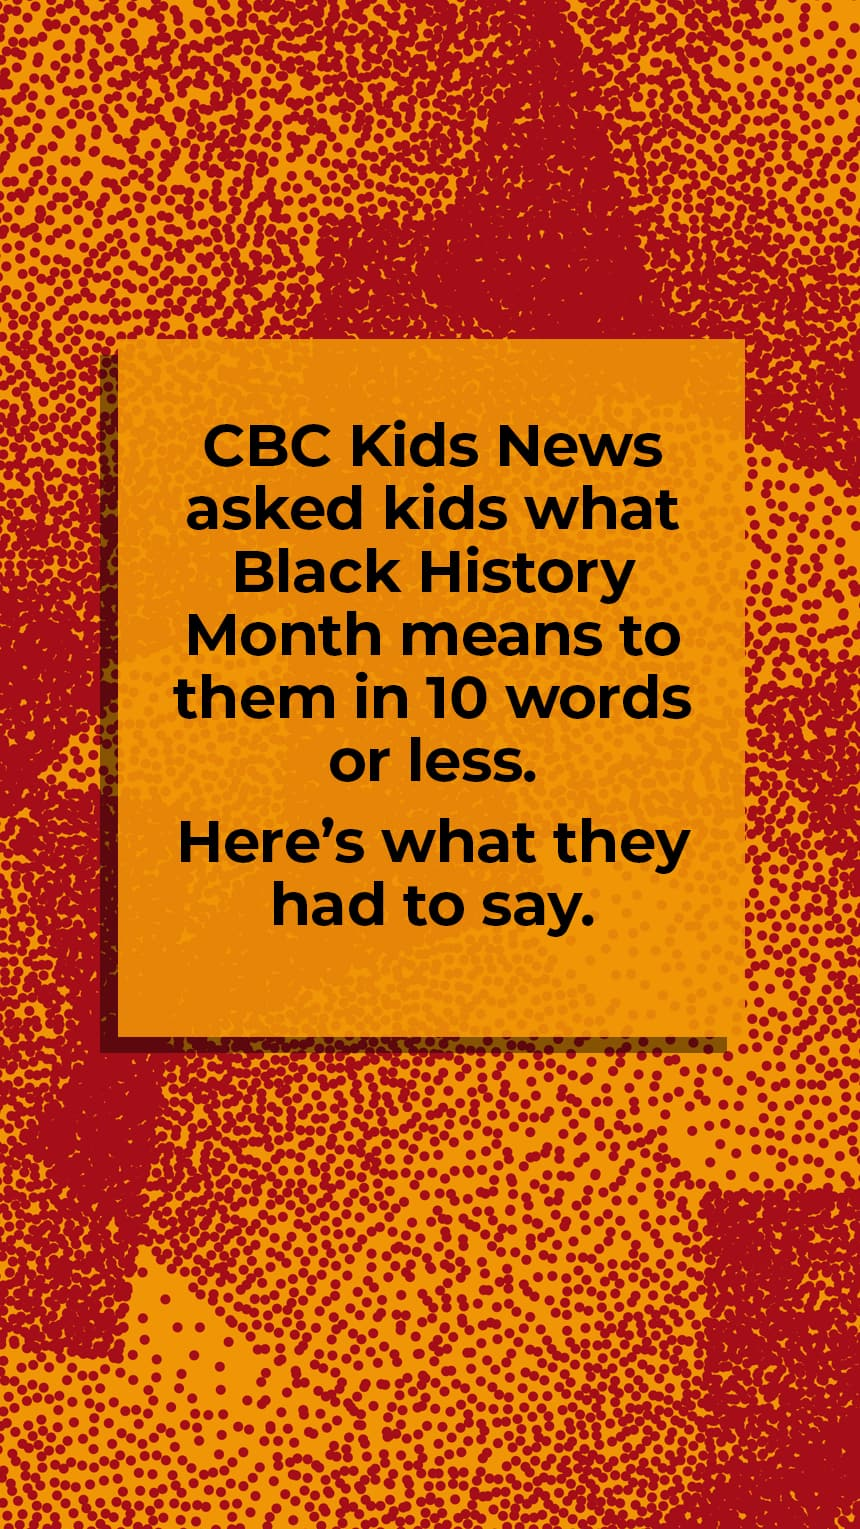 CBC Kids News asked kids what Black History Month means to them in 10 words or less. Here's what they had to say.